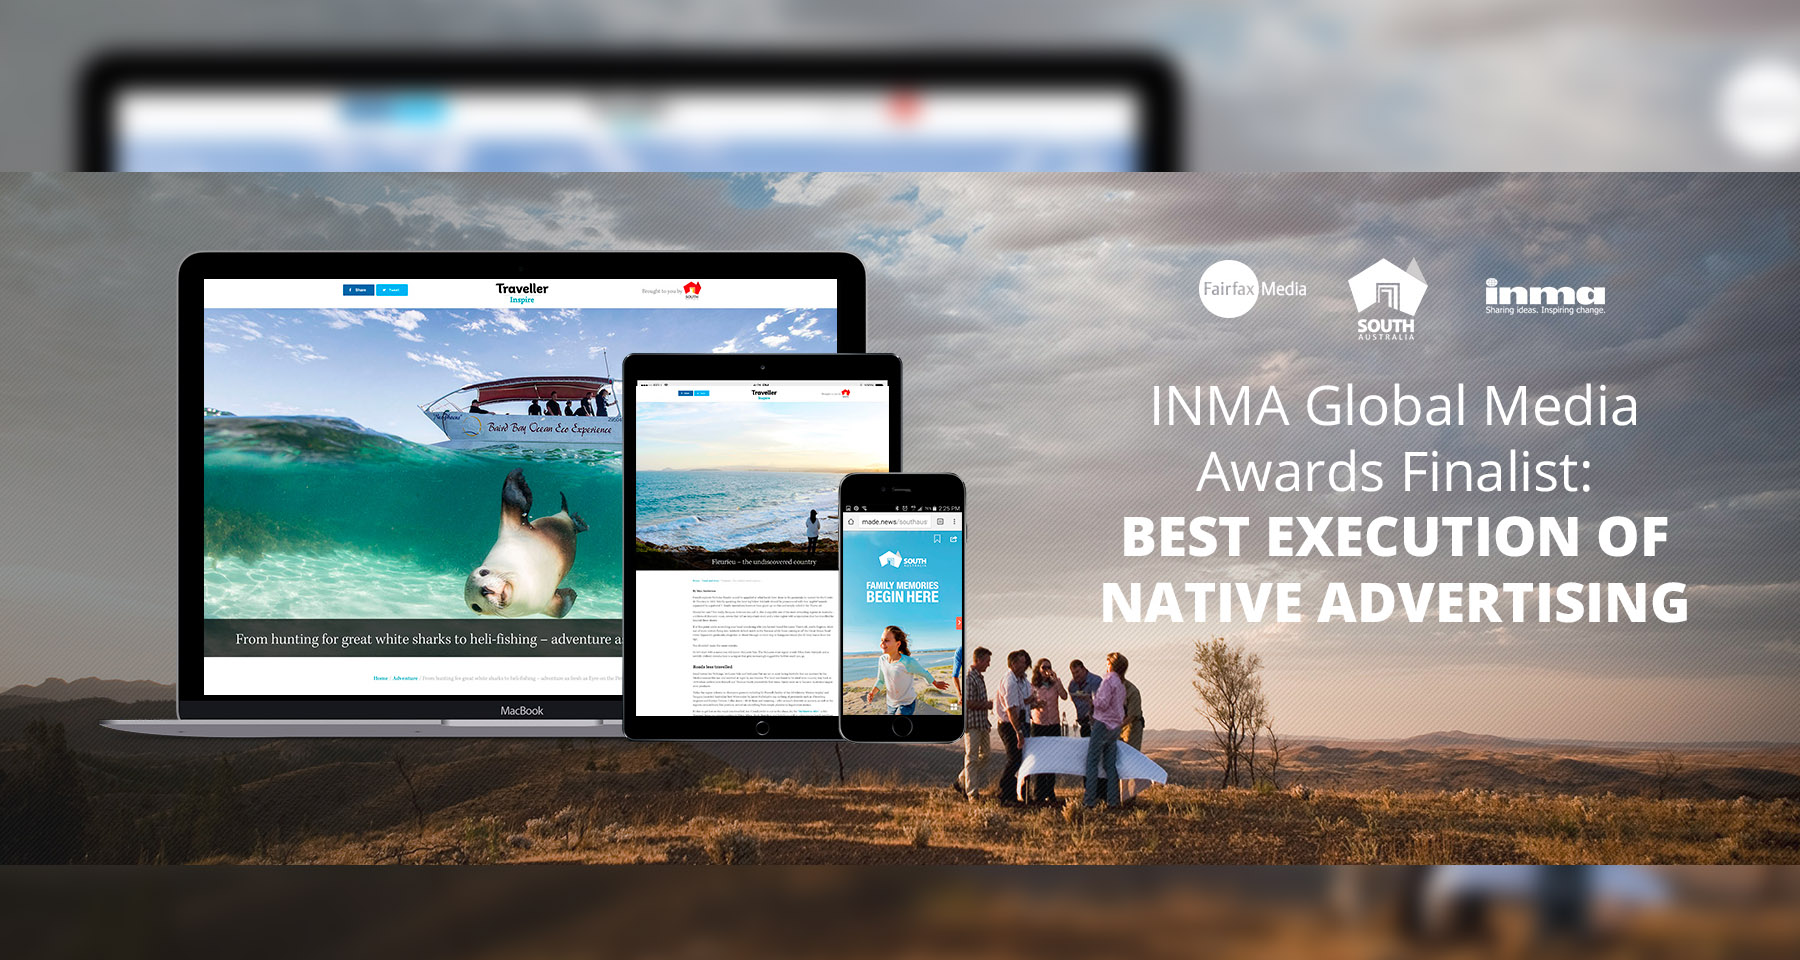 Fairfax Media's digital content marketing campaign helps revitalise local tourism